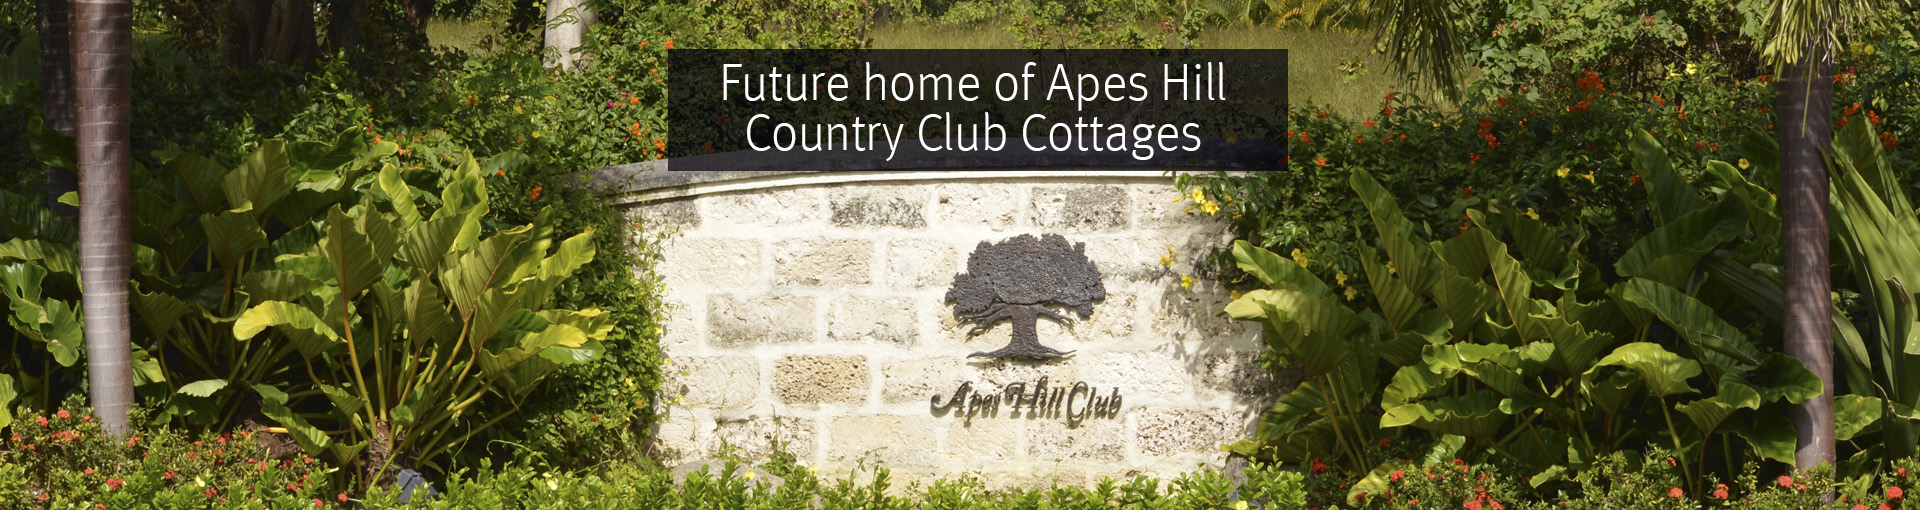 Apes Hill Country Club Cottages